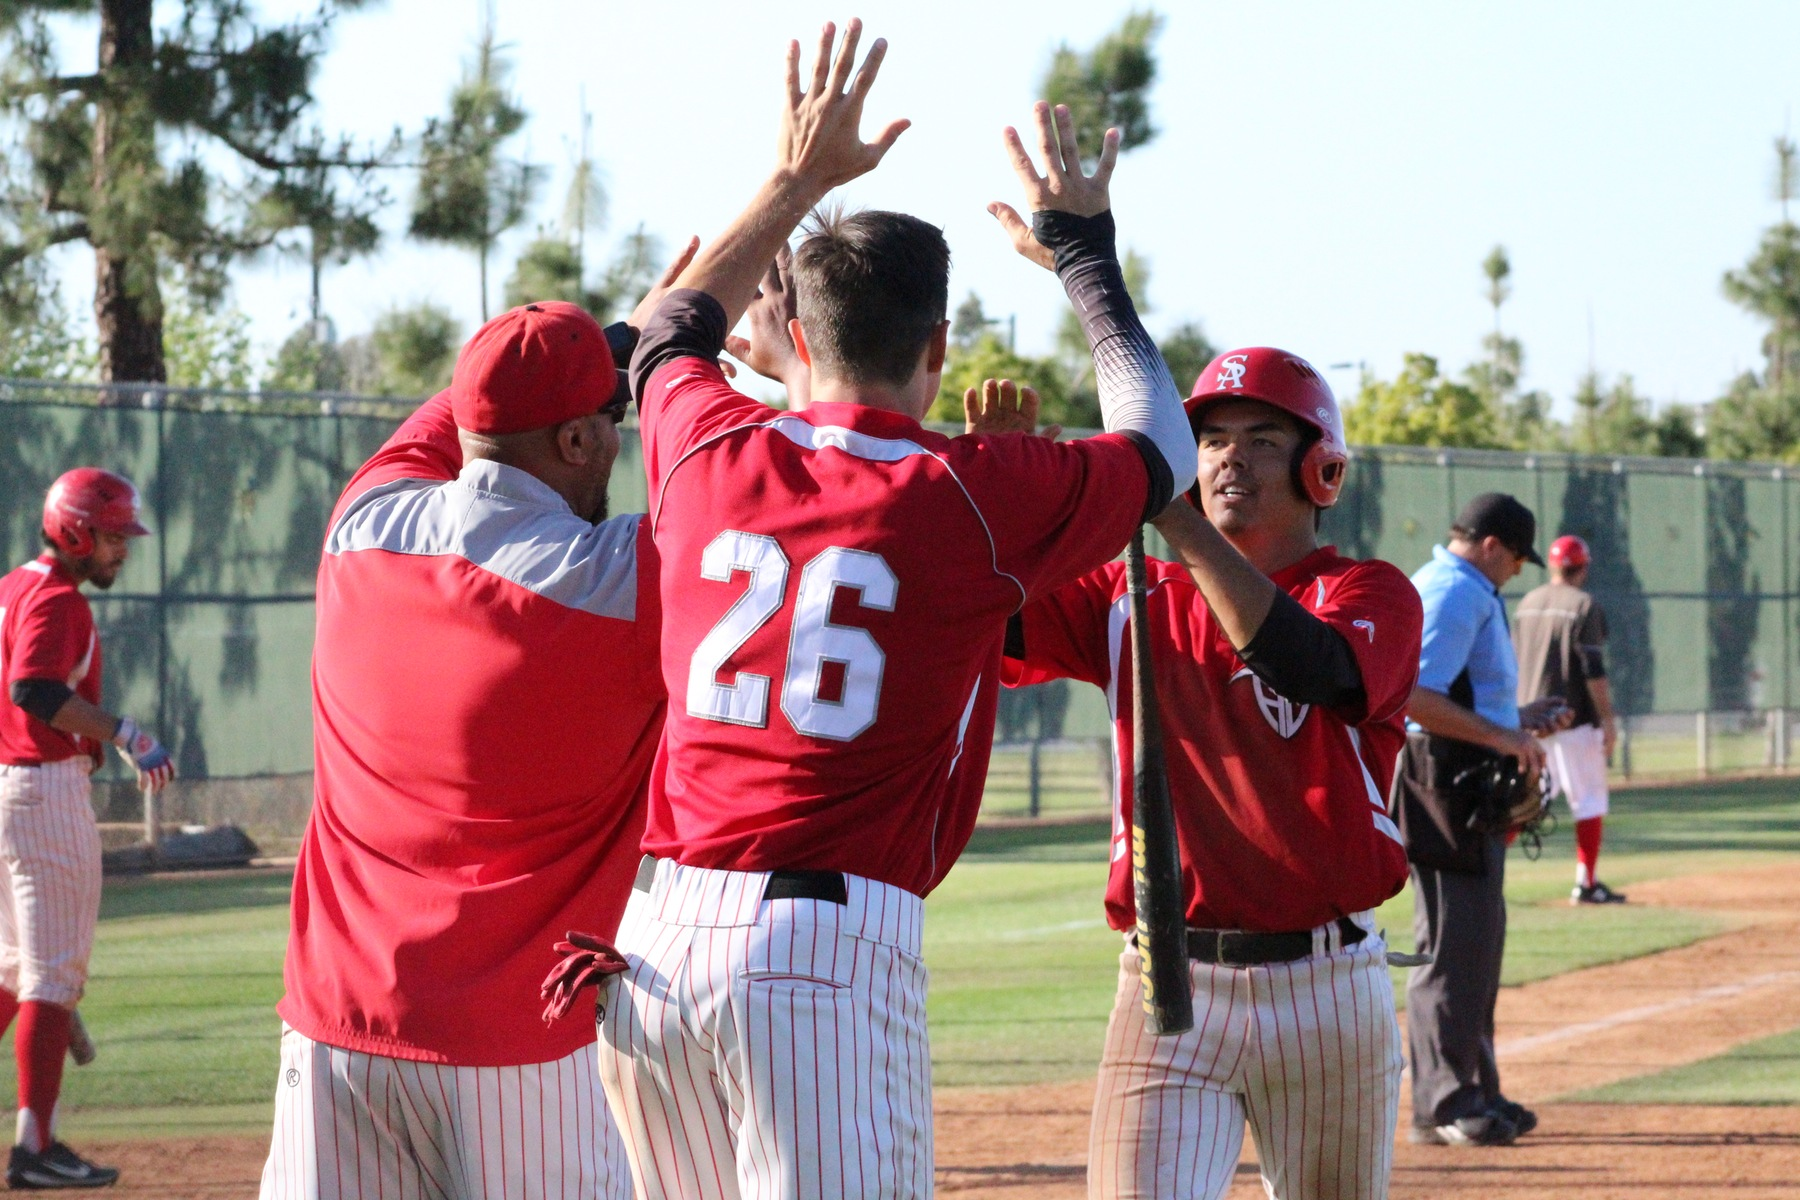 Santa Ana Stays In the Hunt with 10-6 Win Over Irvine Valley